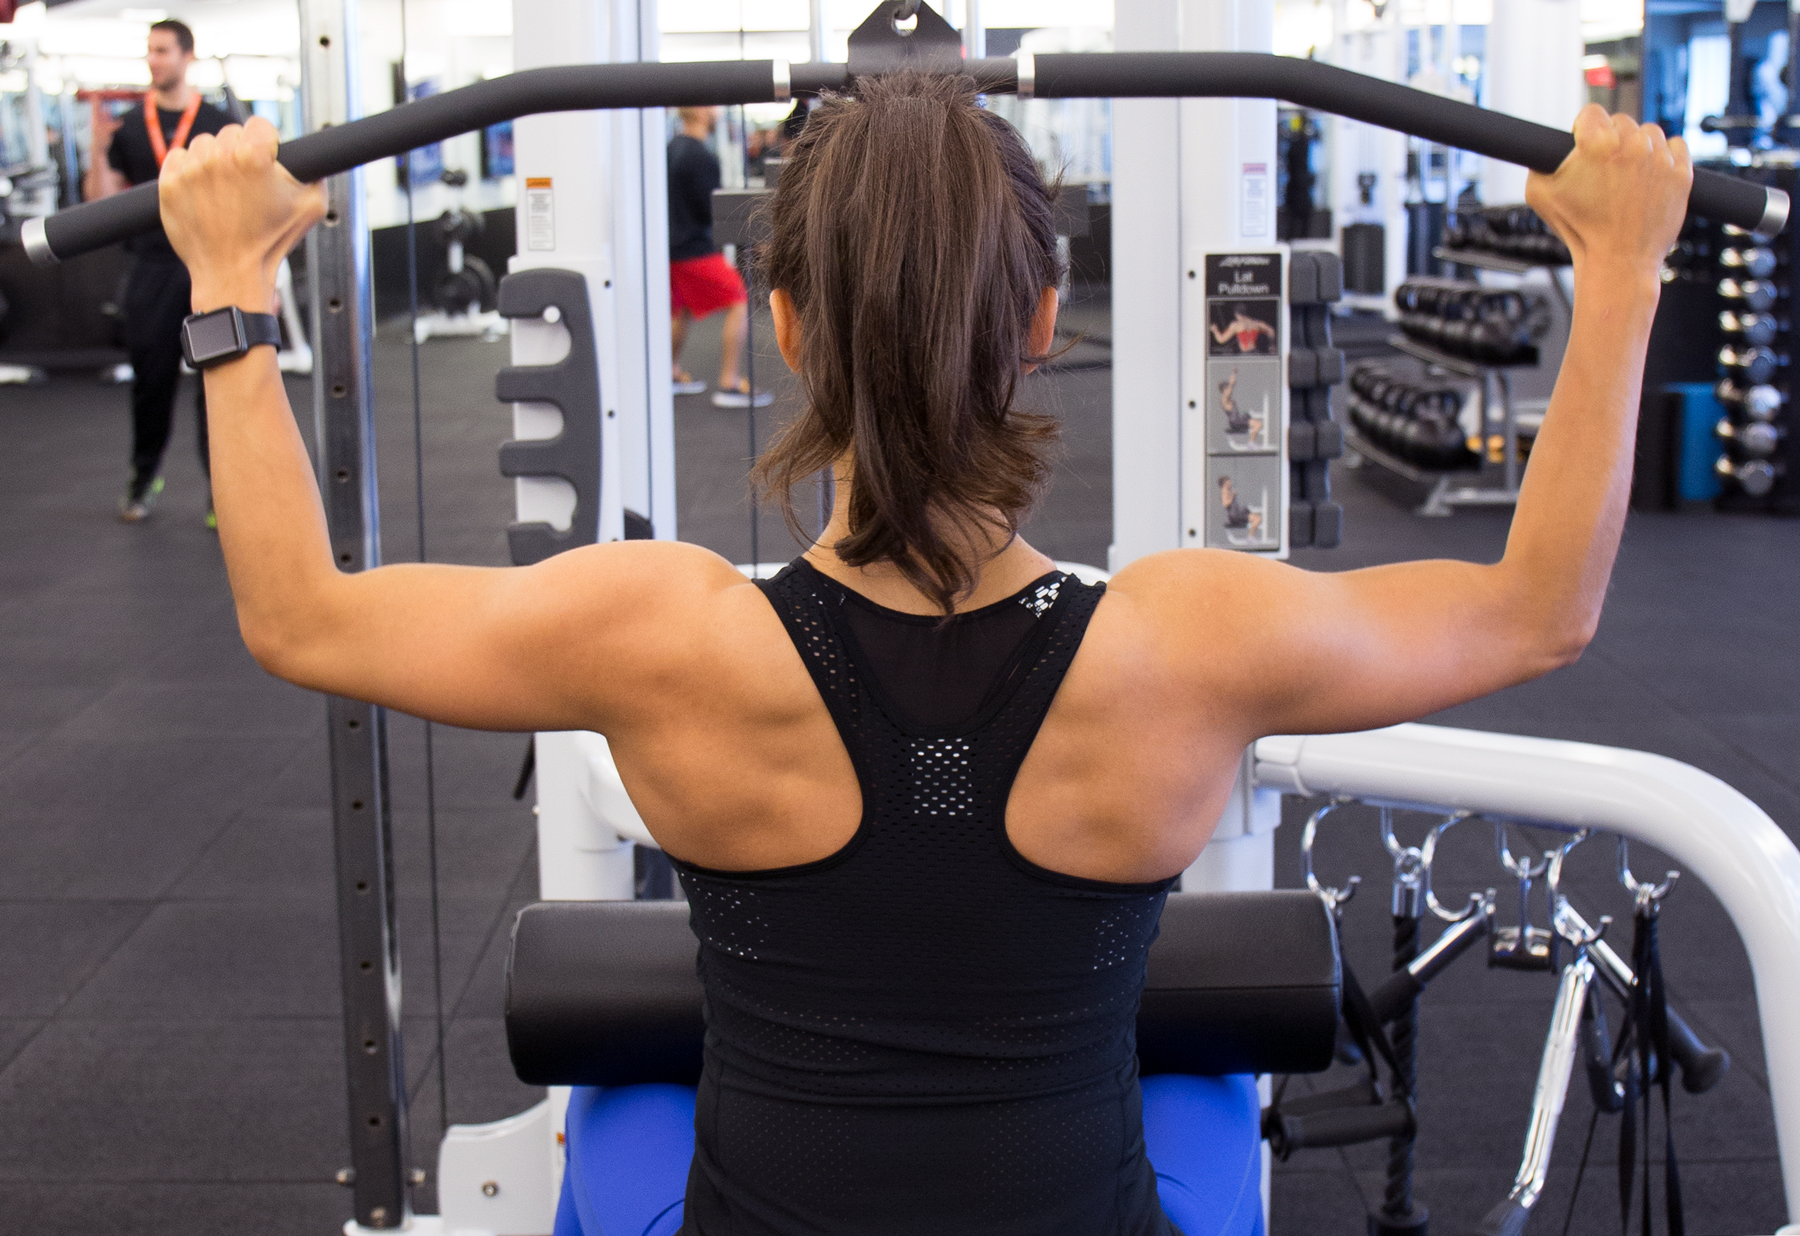 How To Avoid Exercise Injuries When Attending The Gym